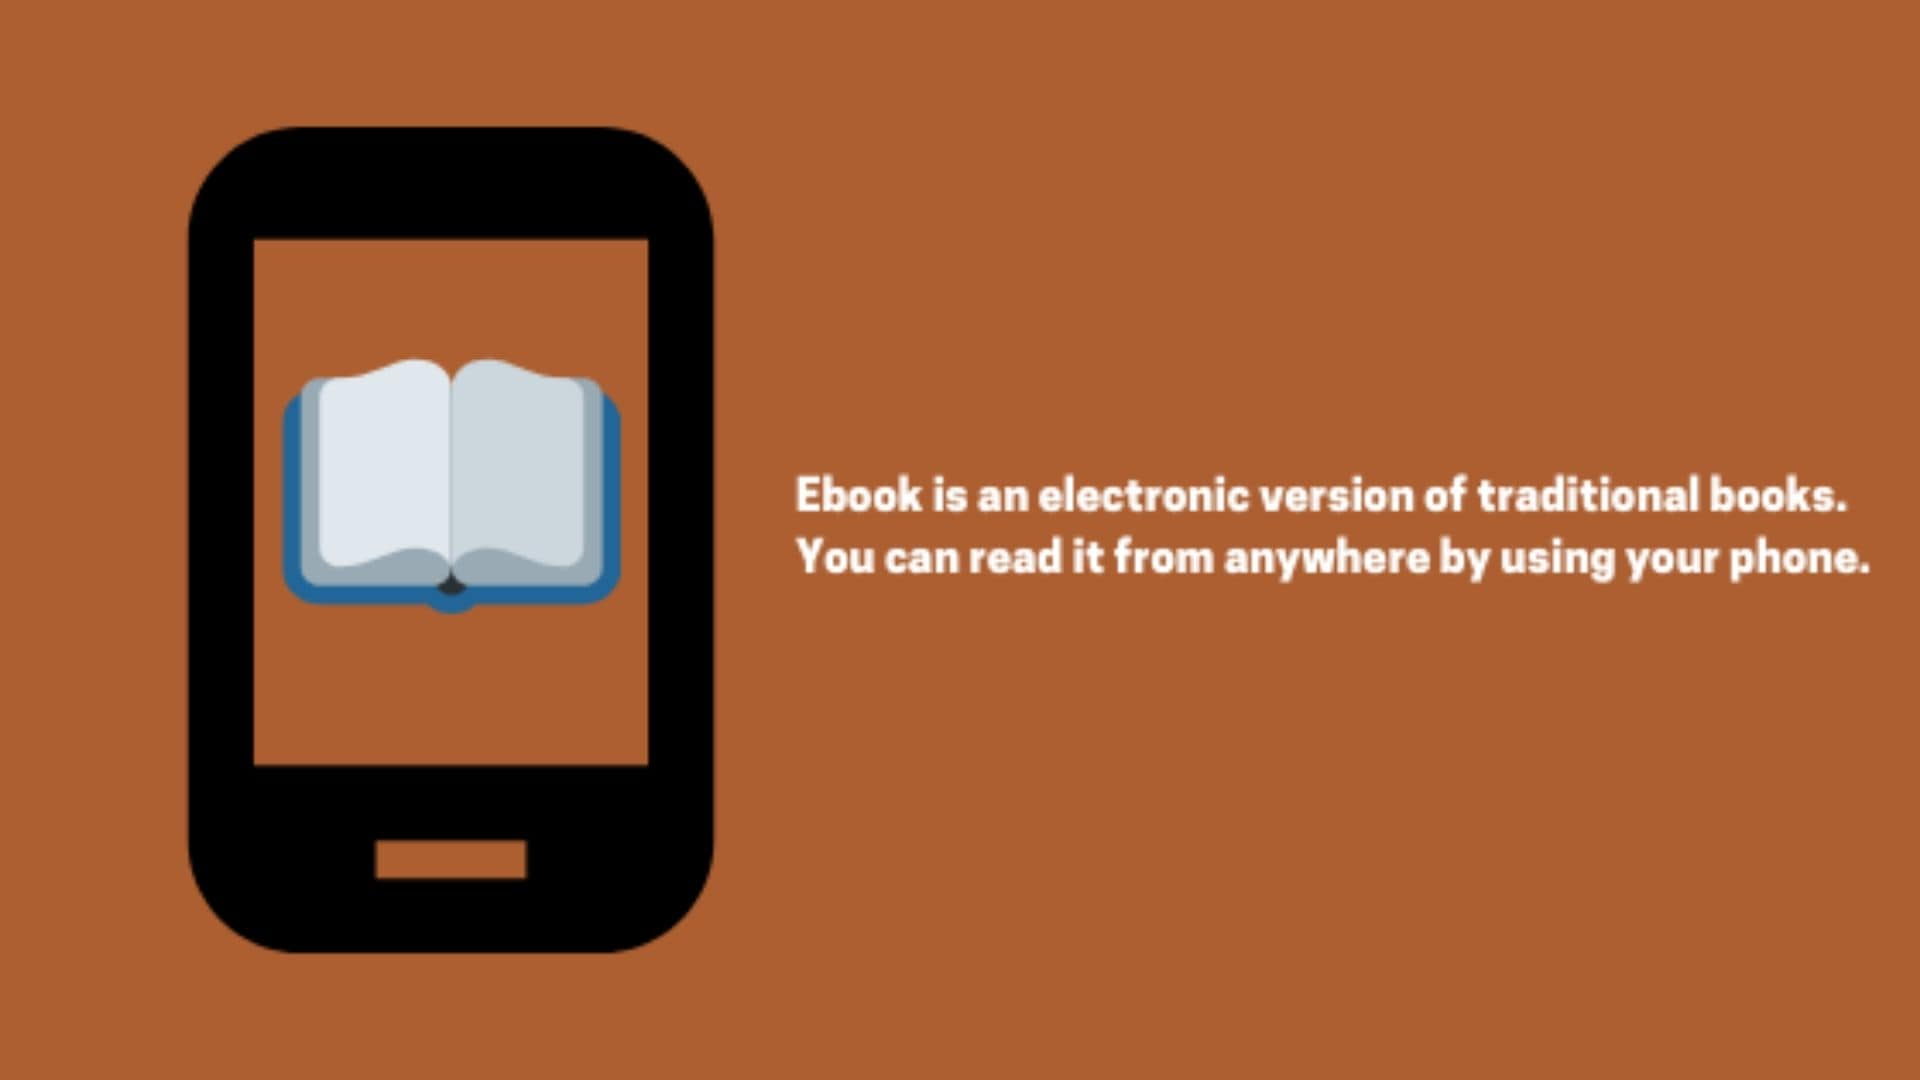 What are ebooks?